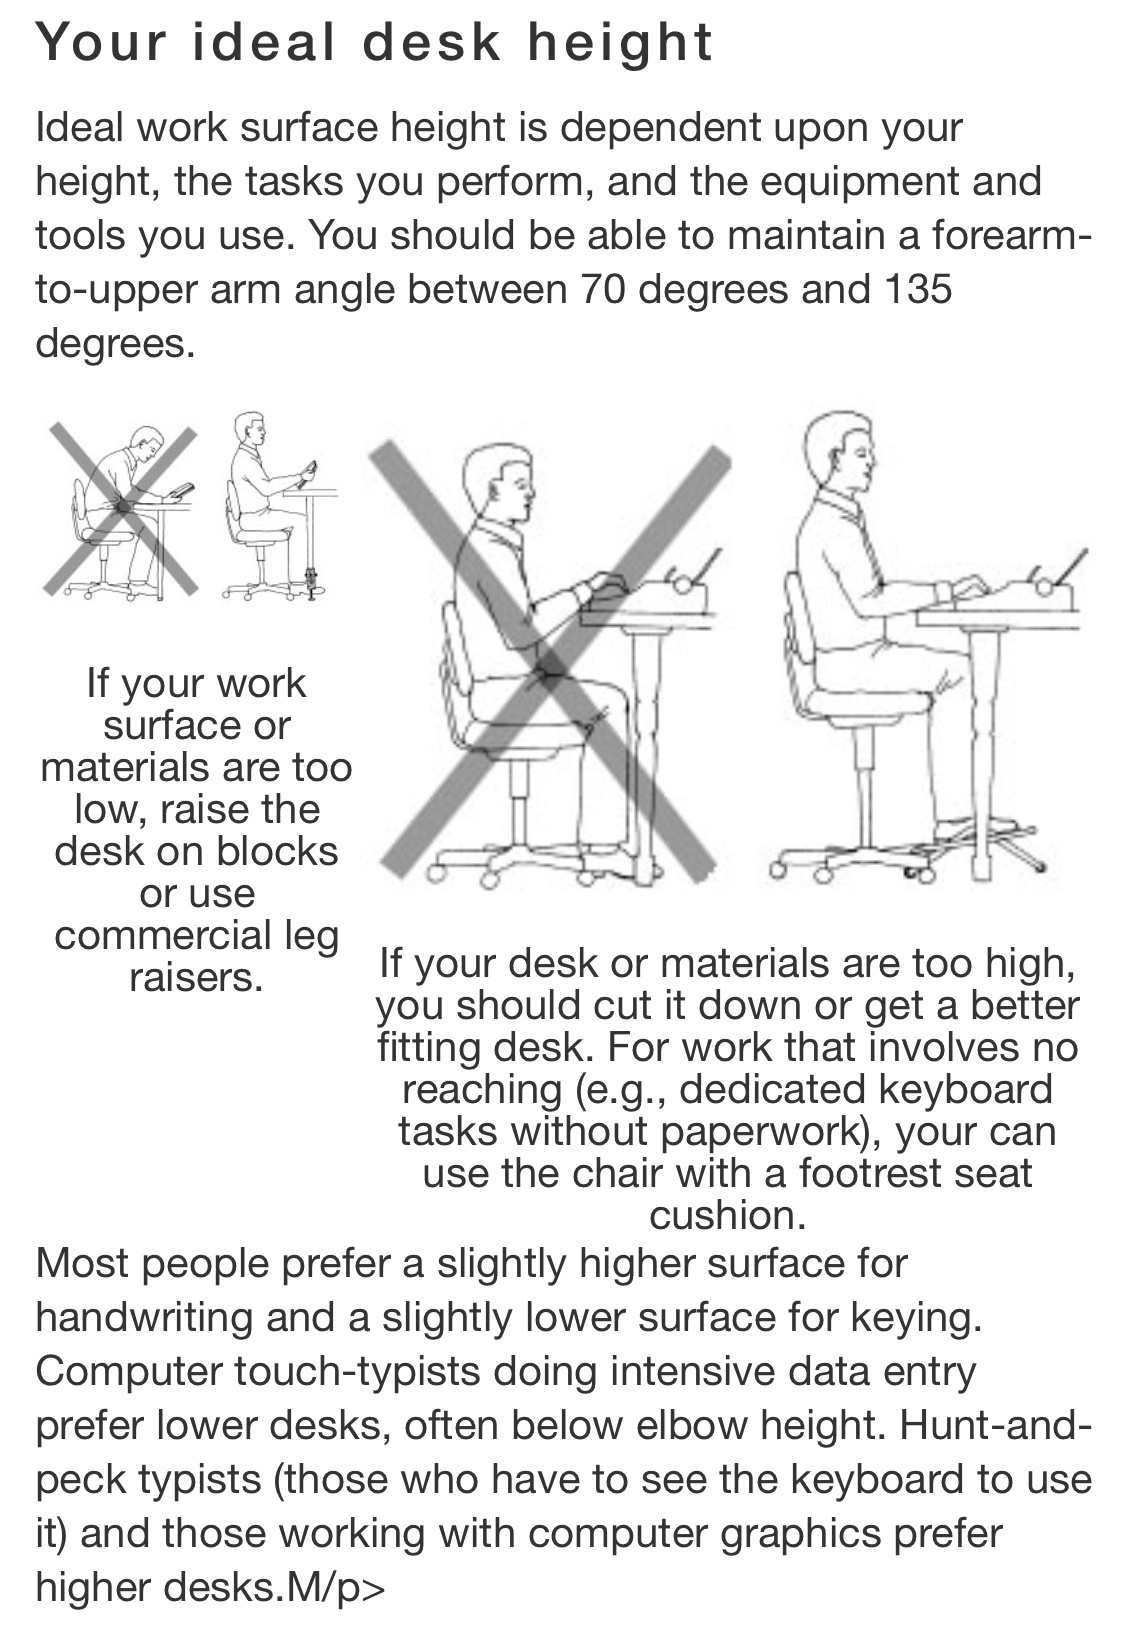 Typical Height Of An Office Desk, What Is The Best Height For A Work Desk